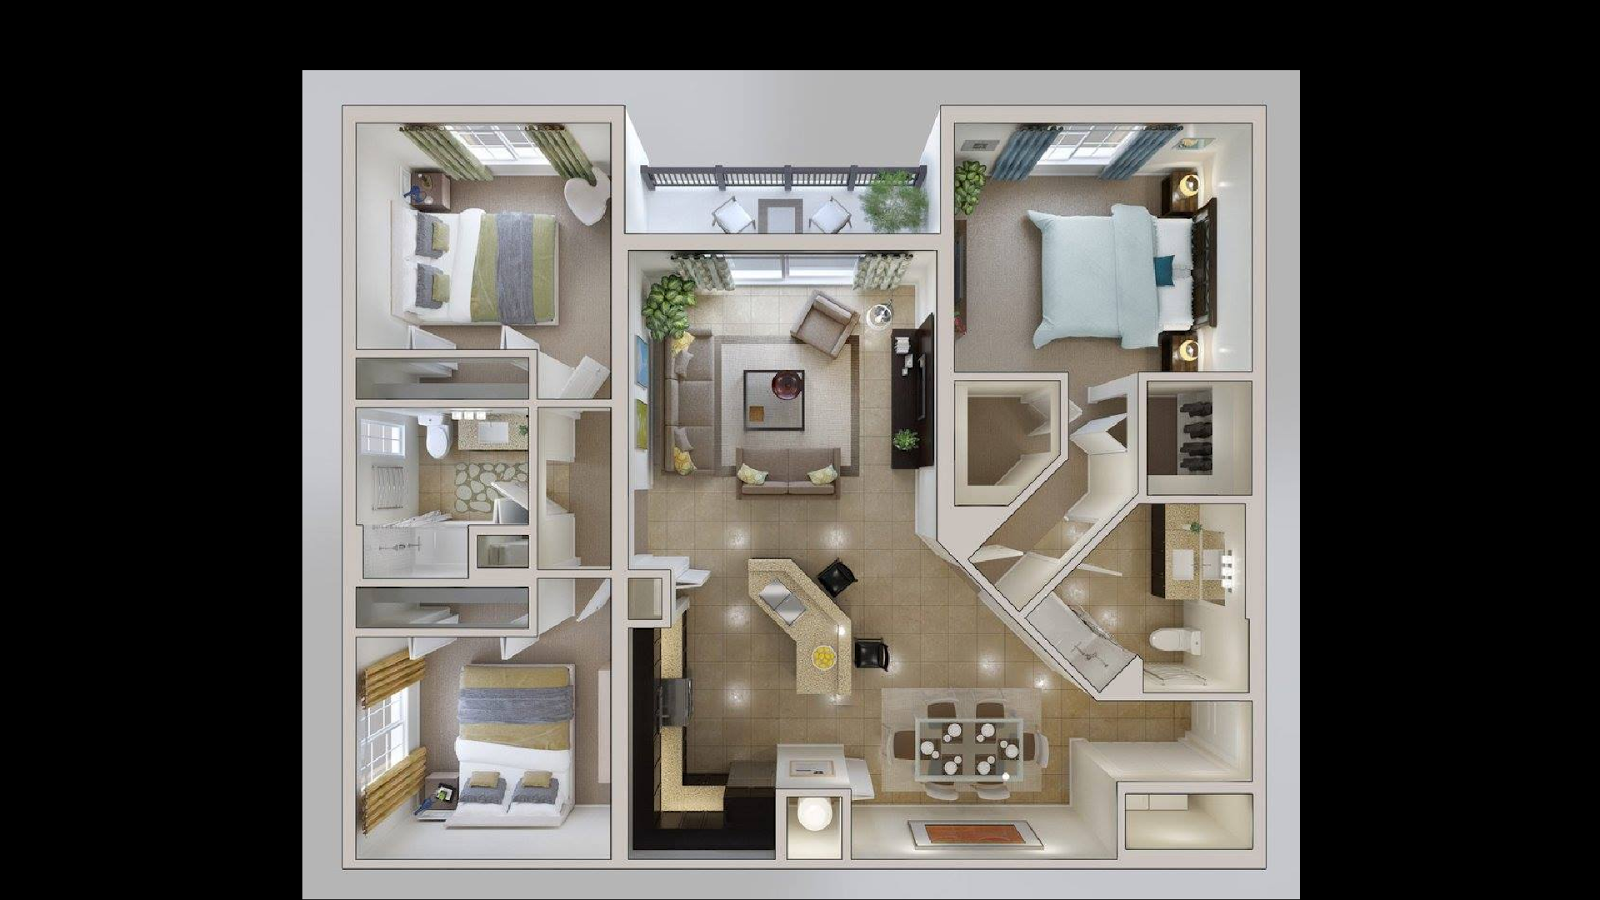 House design and layout - 3d House Design Screenshot